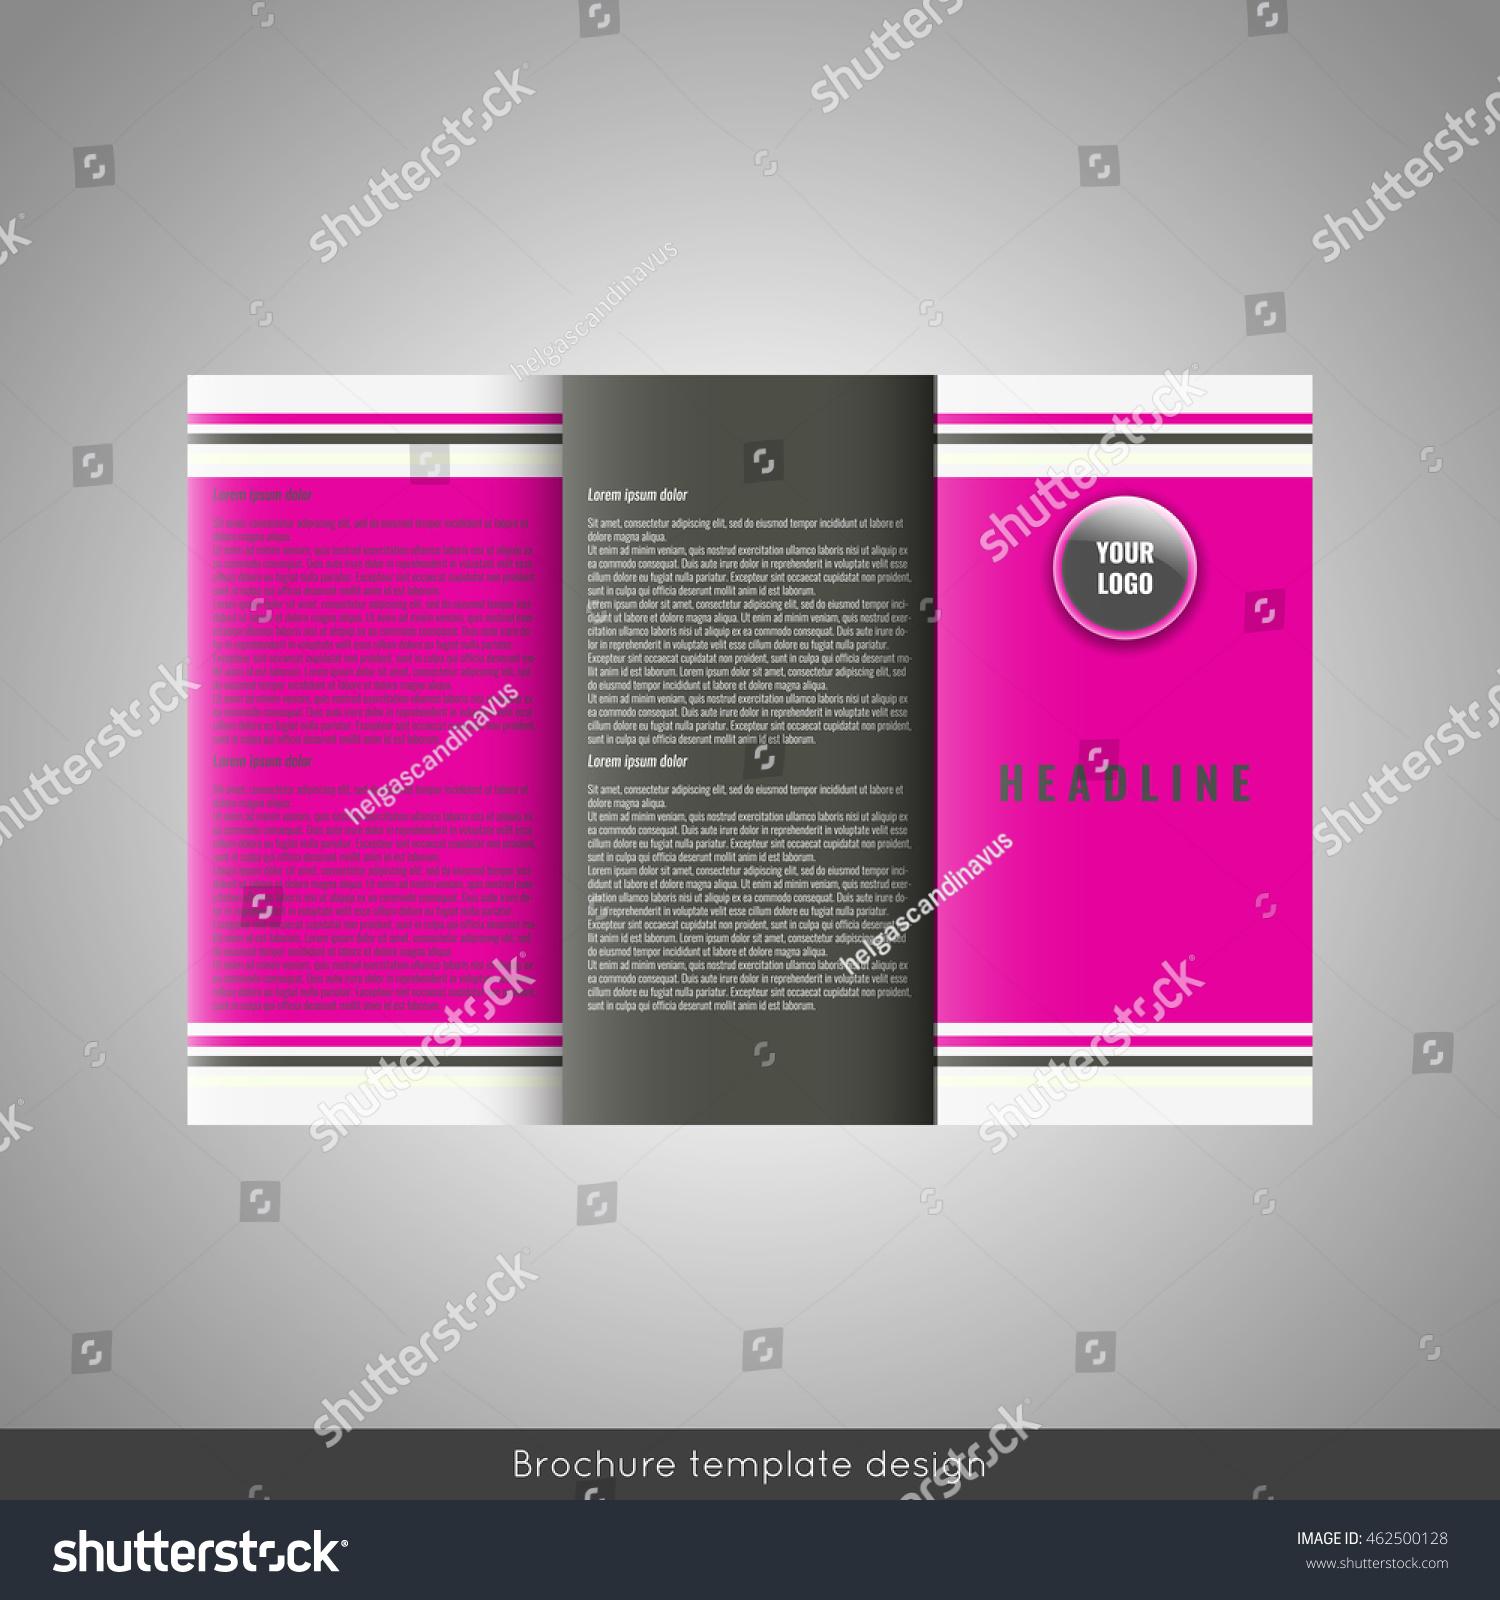 Business Trifold Brochure Template Design Wavy Stock Vector HD ...